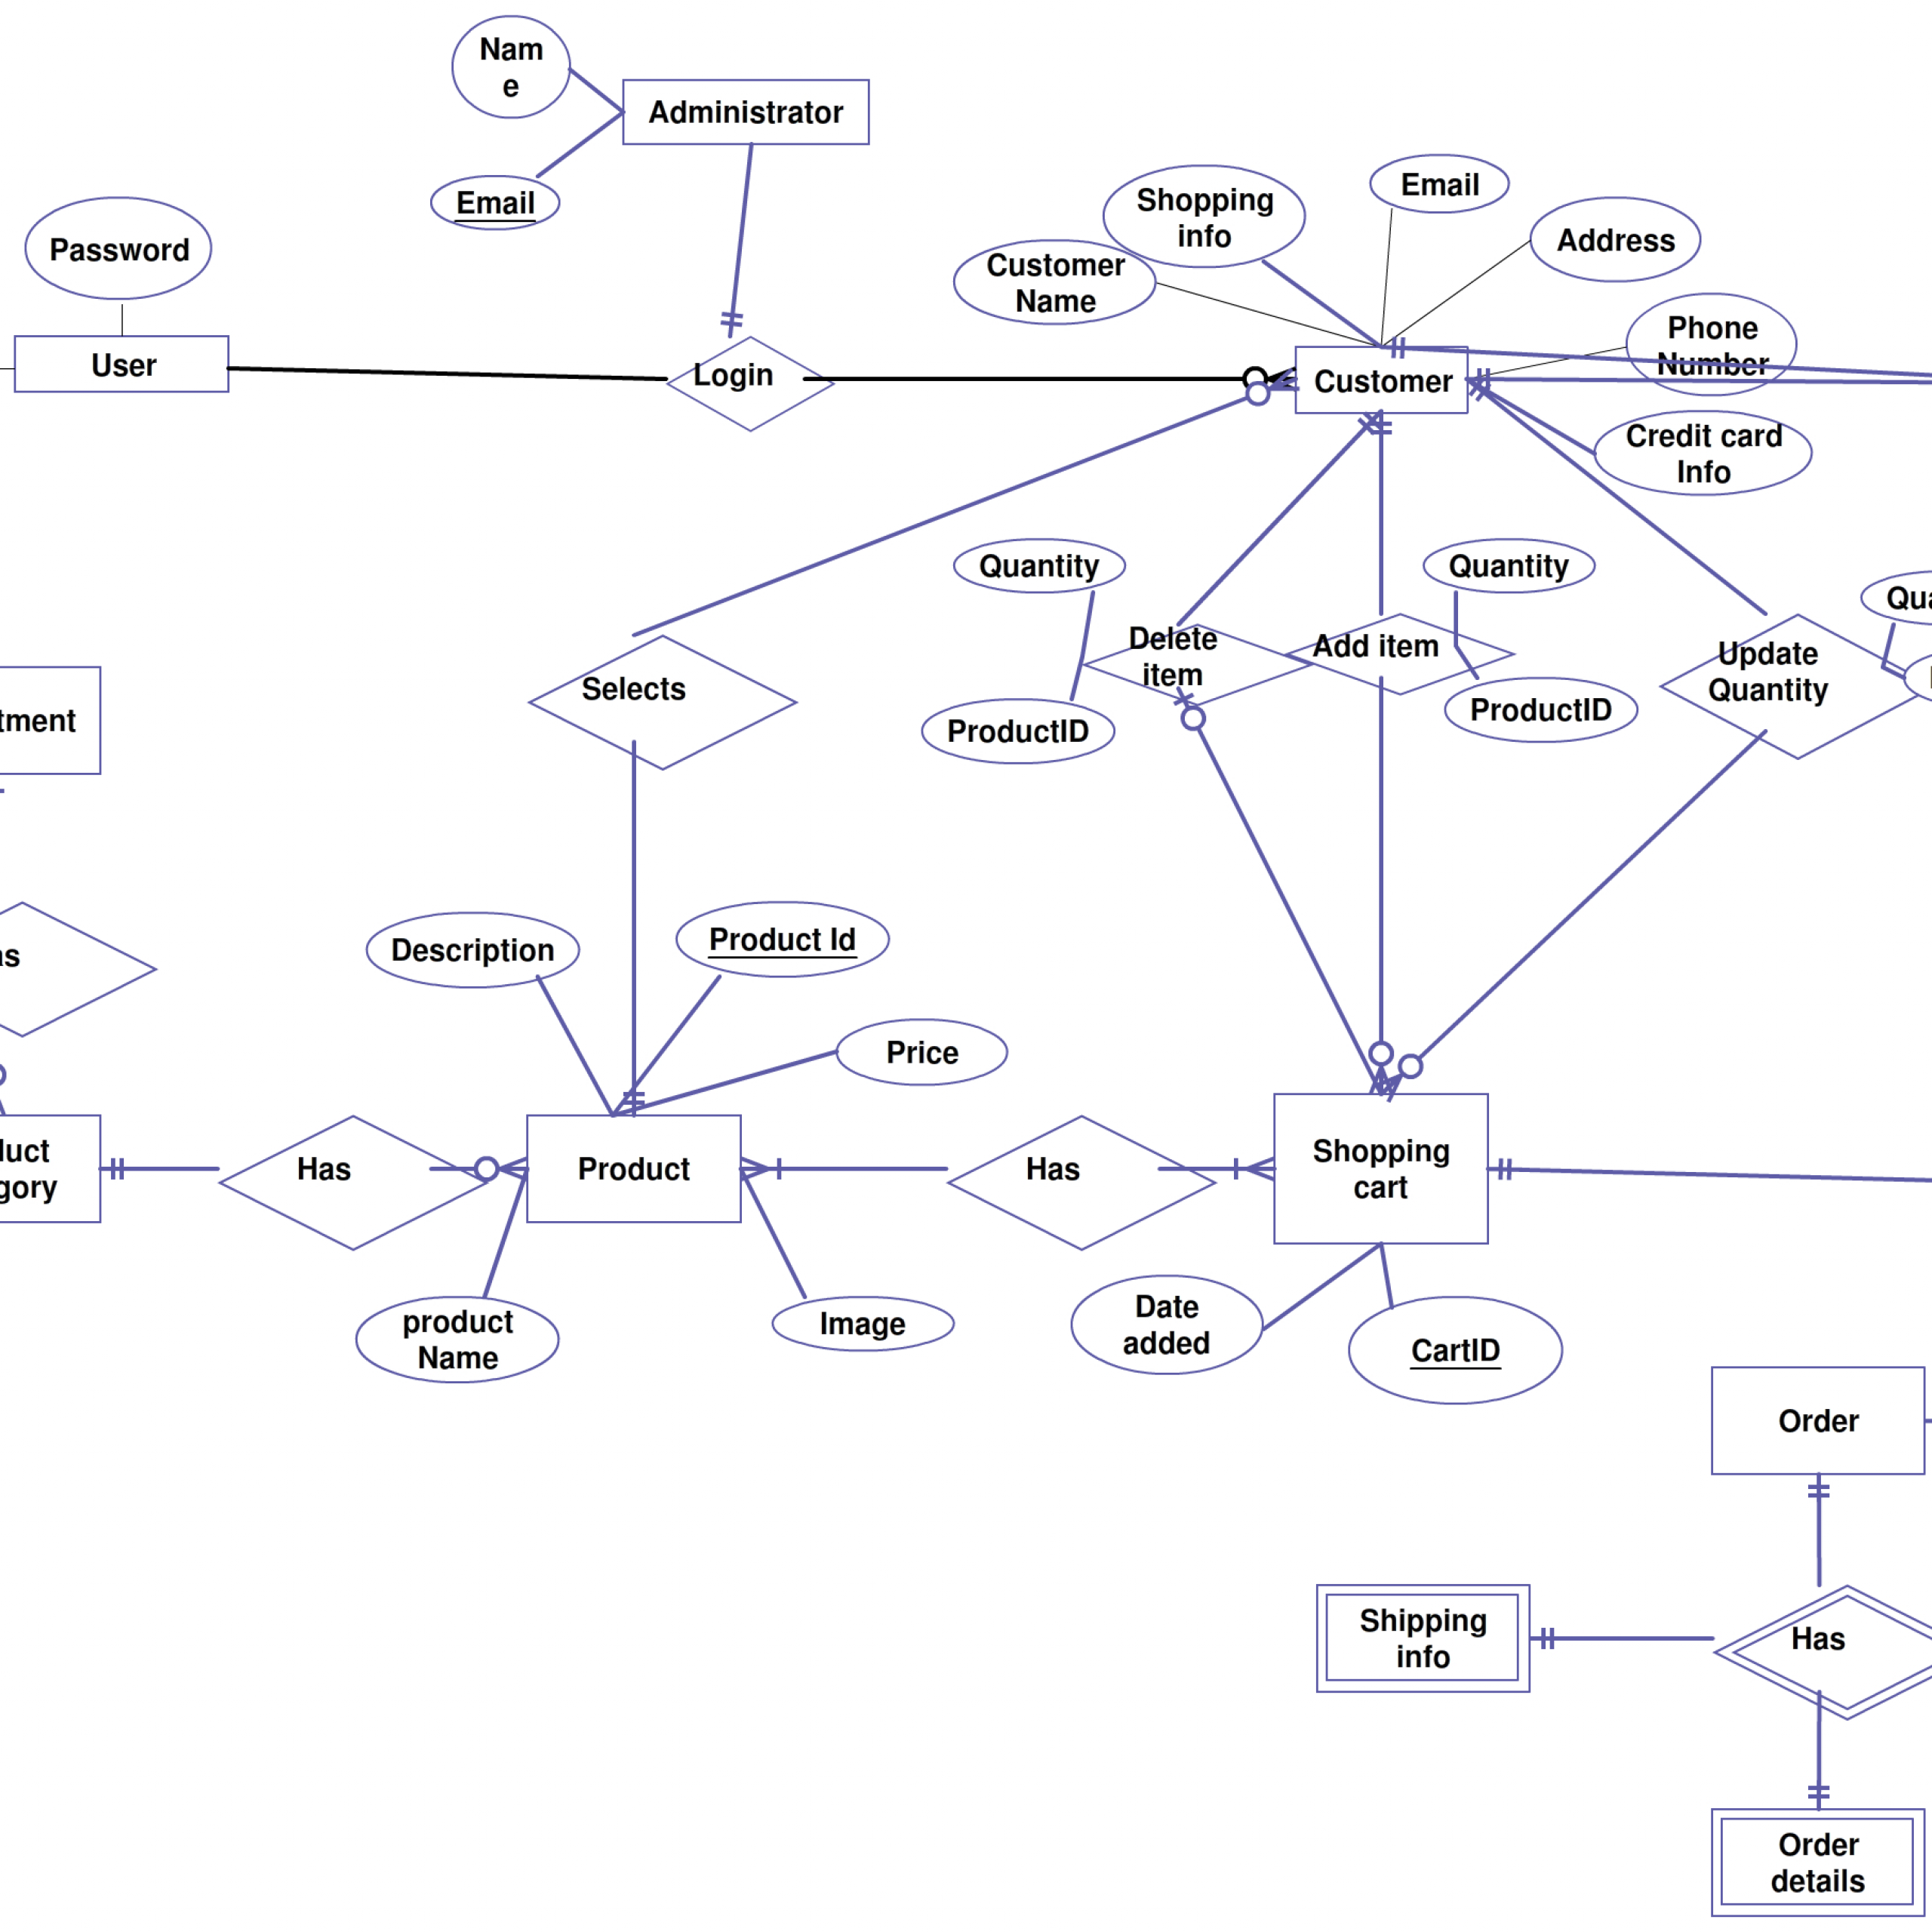 Er Diagrams Help Us To Visualize How Data Is Connected In A regarding Er Diagram Gym Management System